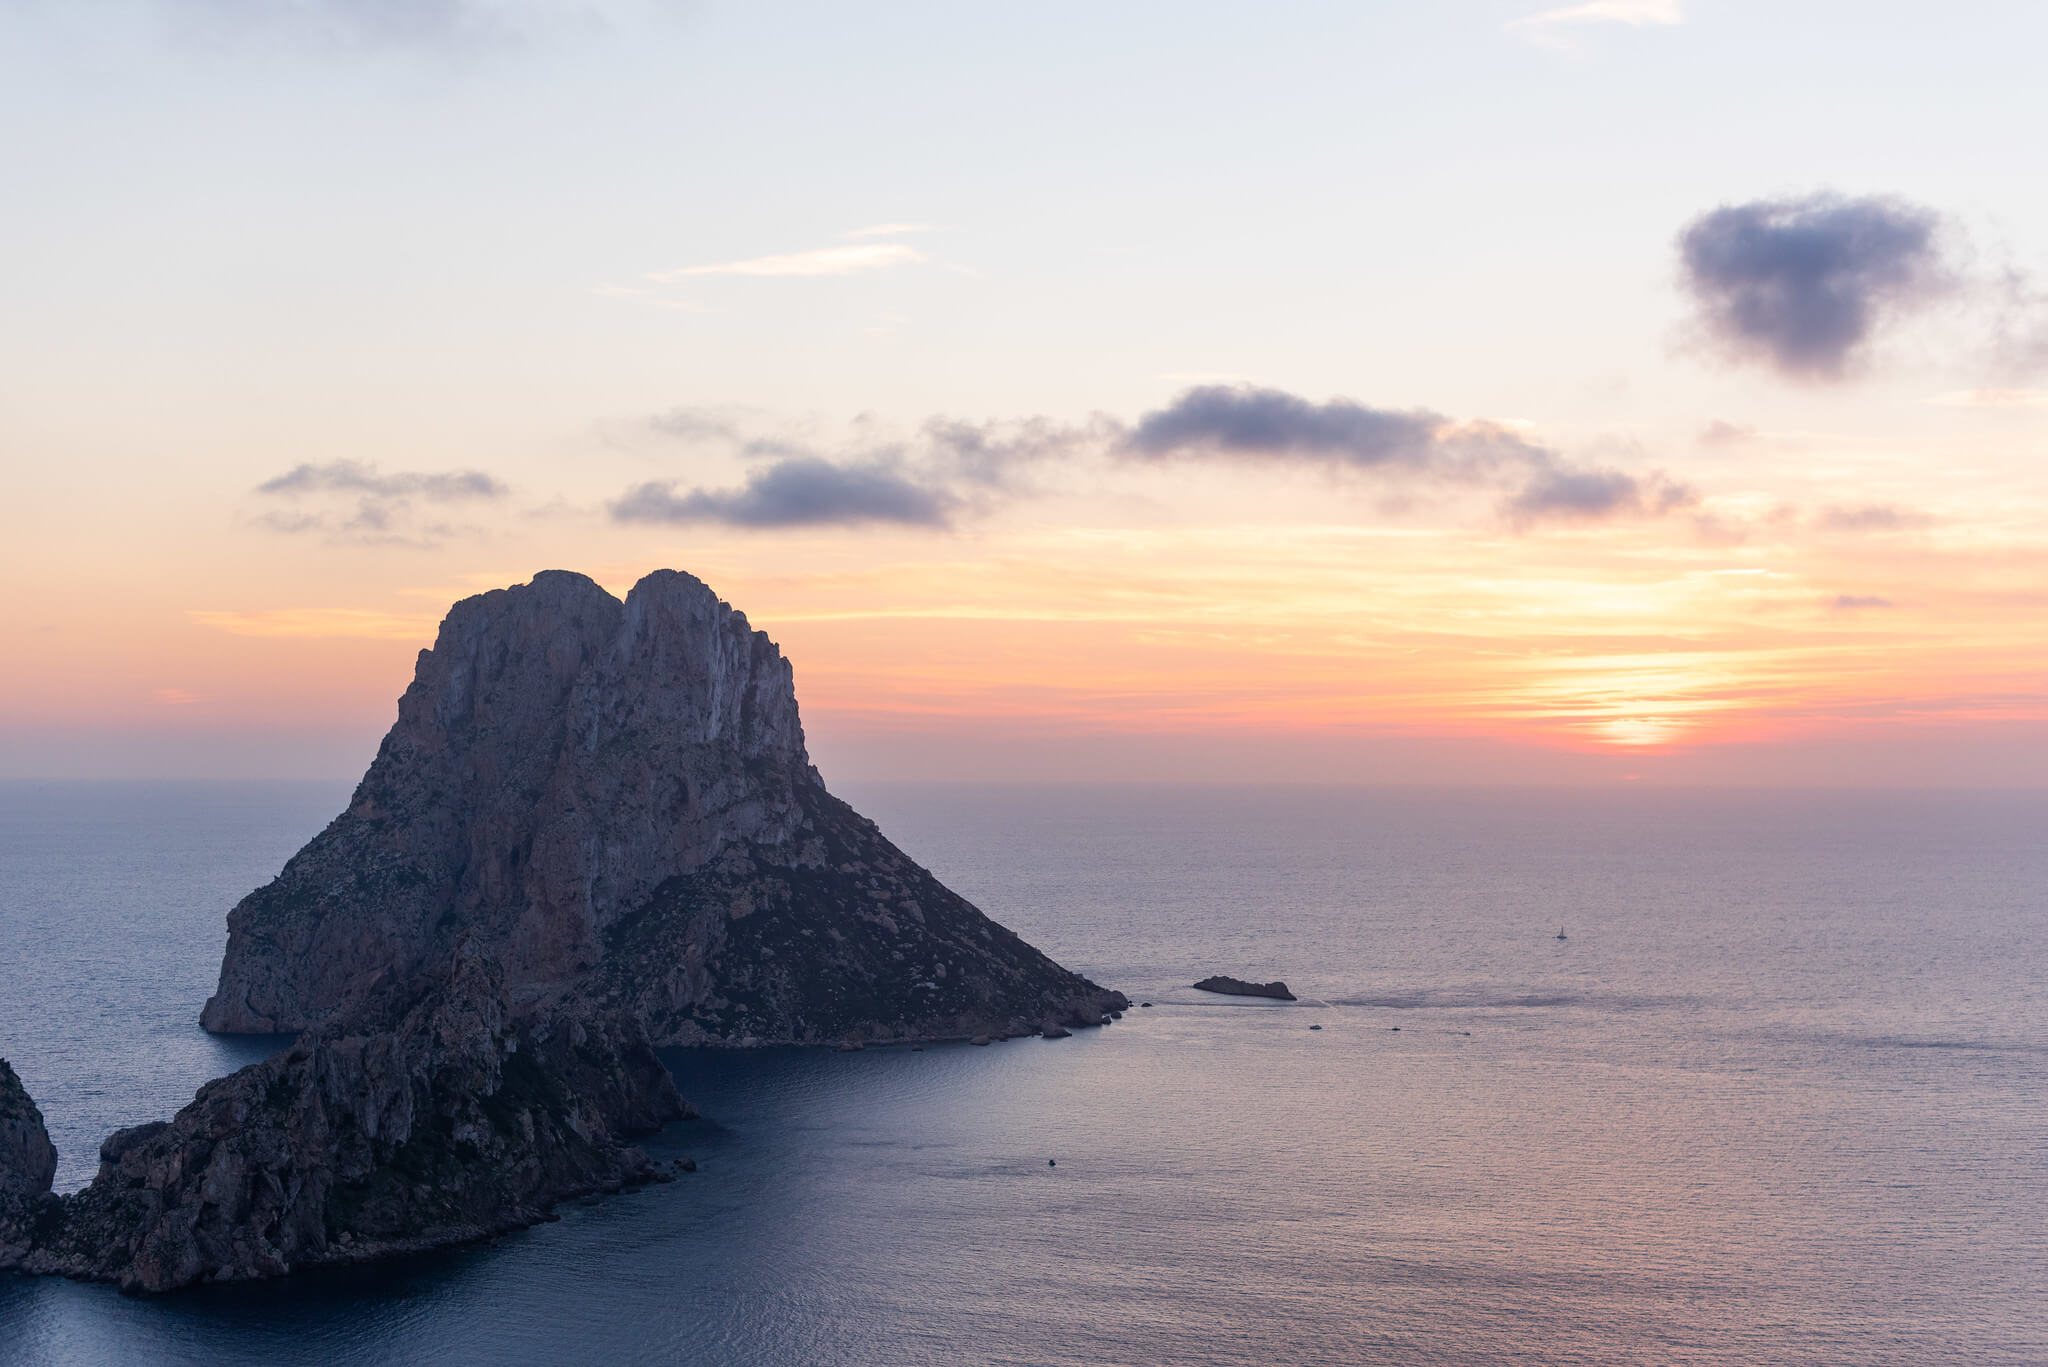 https://www.white-ibiza.com/wp-content/uploads/2020/03/ibiza-guide-areas-south-west-2020-09.jpg